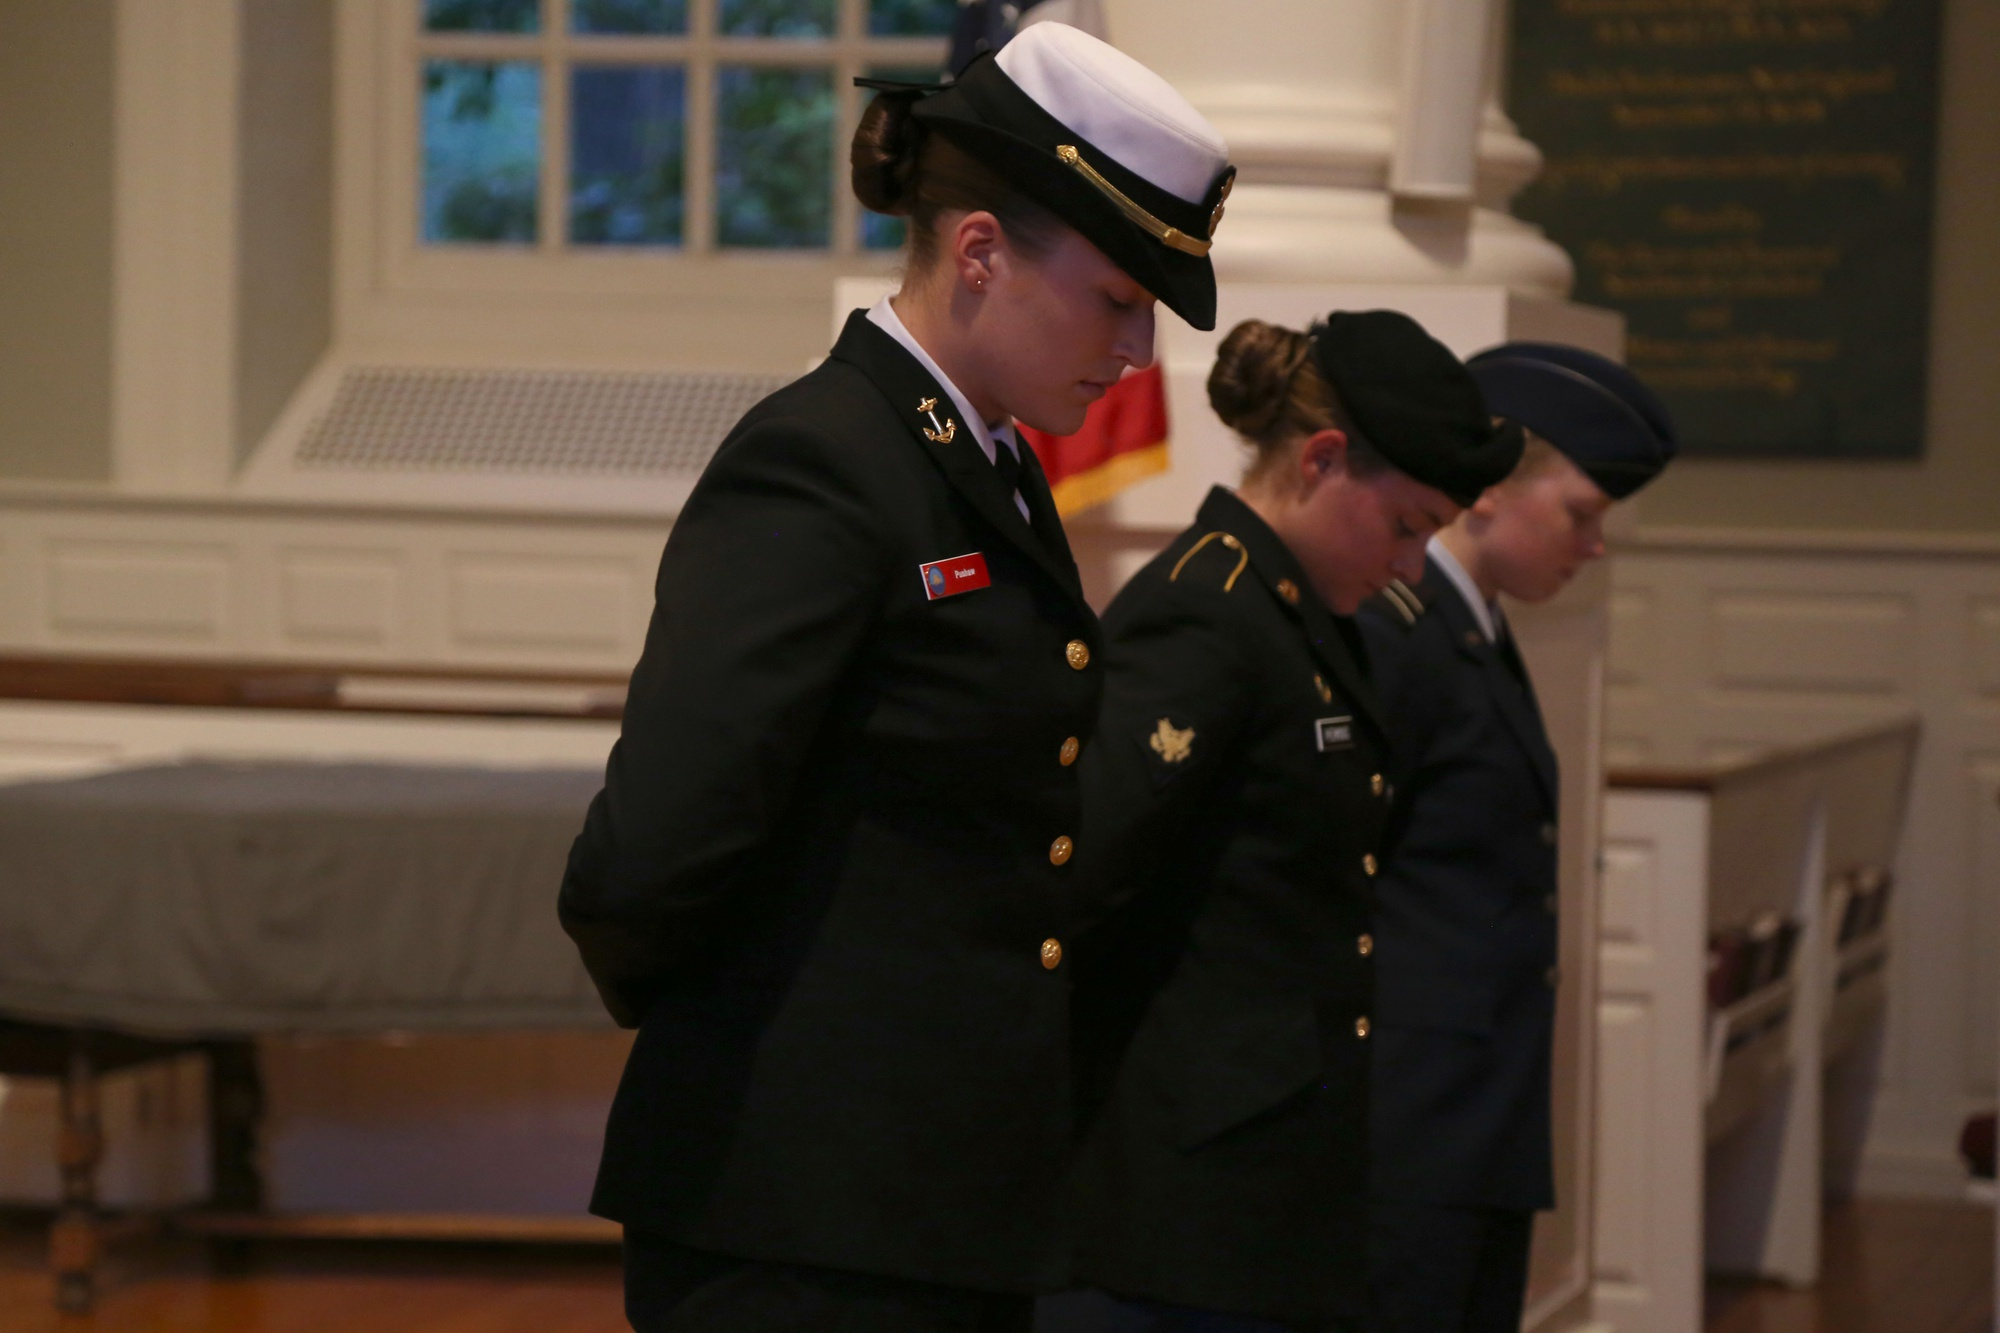 From left, Carolyn F. Pushaw '16, Lucy F. Perkins, and Kira R. Headrick '17 bow their heads during a 9/11 memorial service hosted by ROTC cadets and midshipmen in 2014.